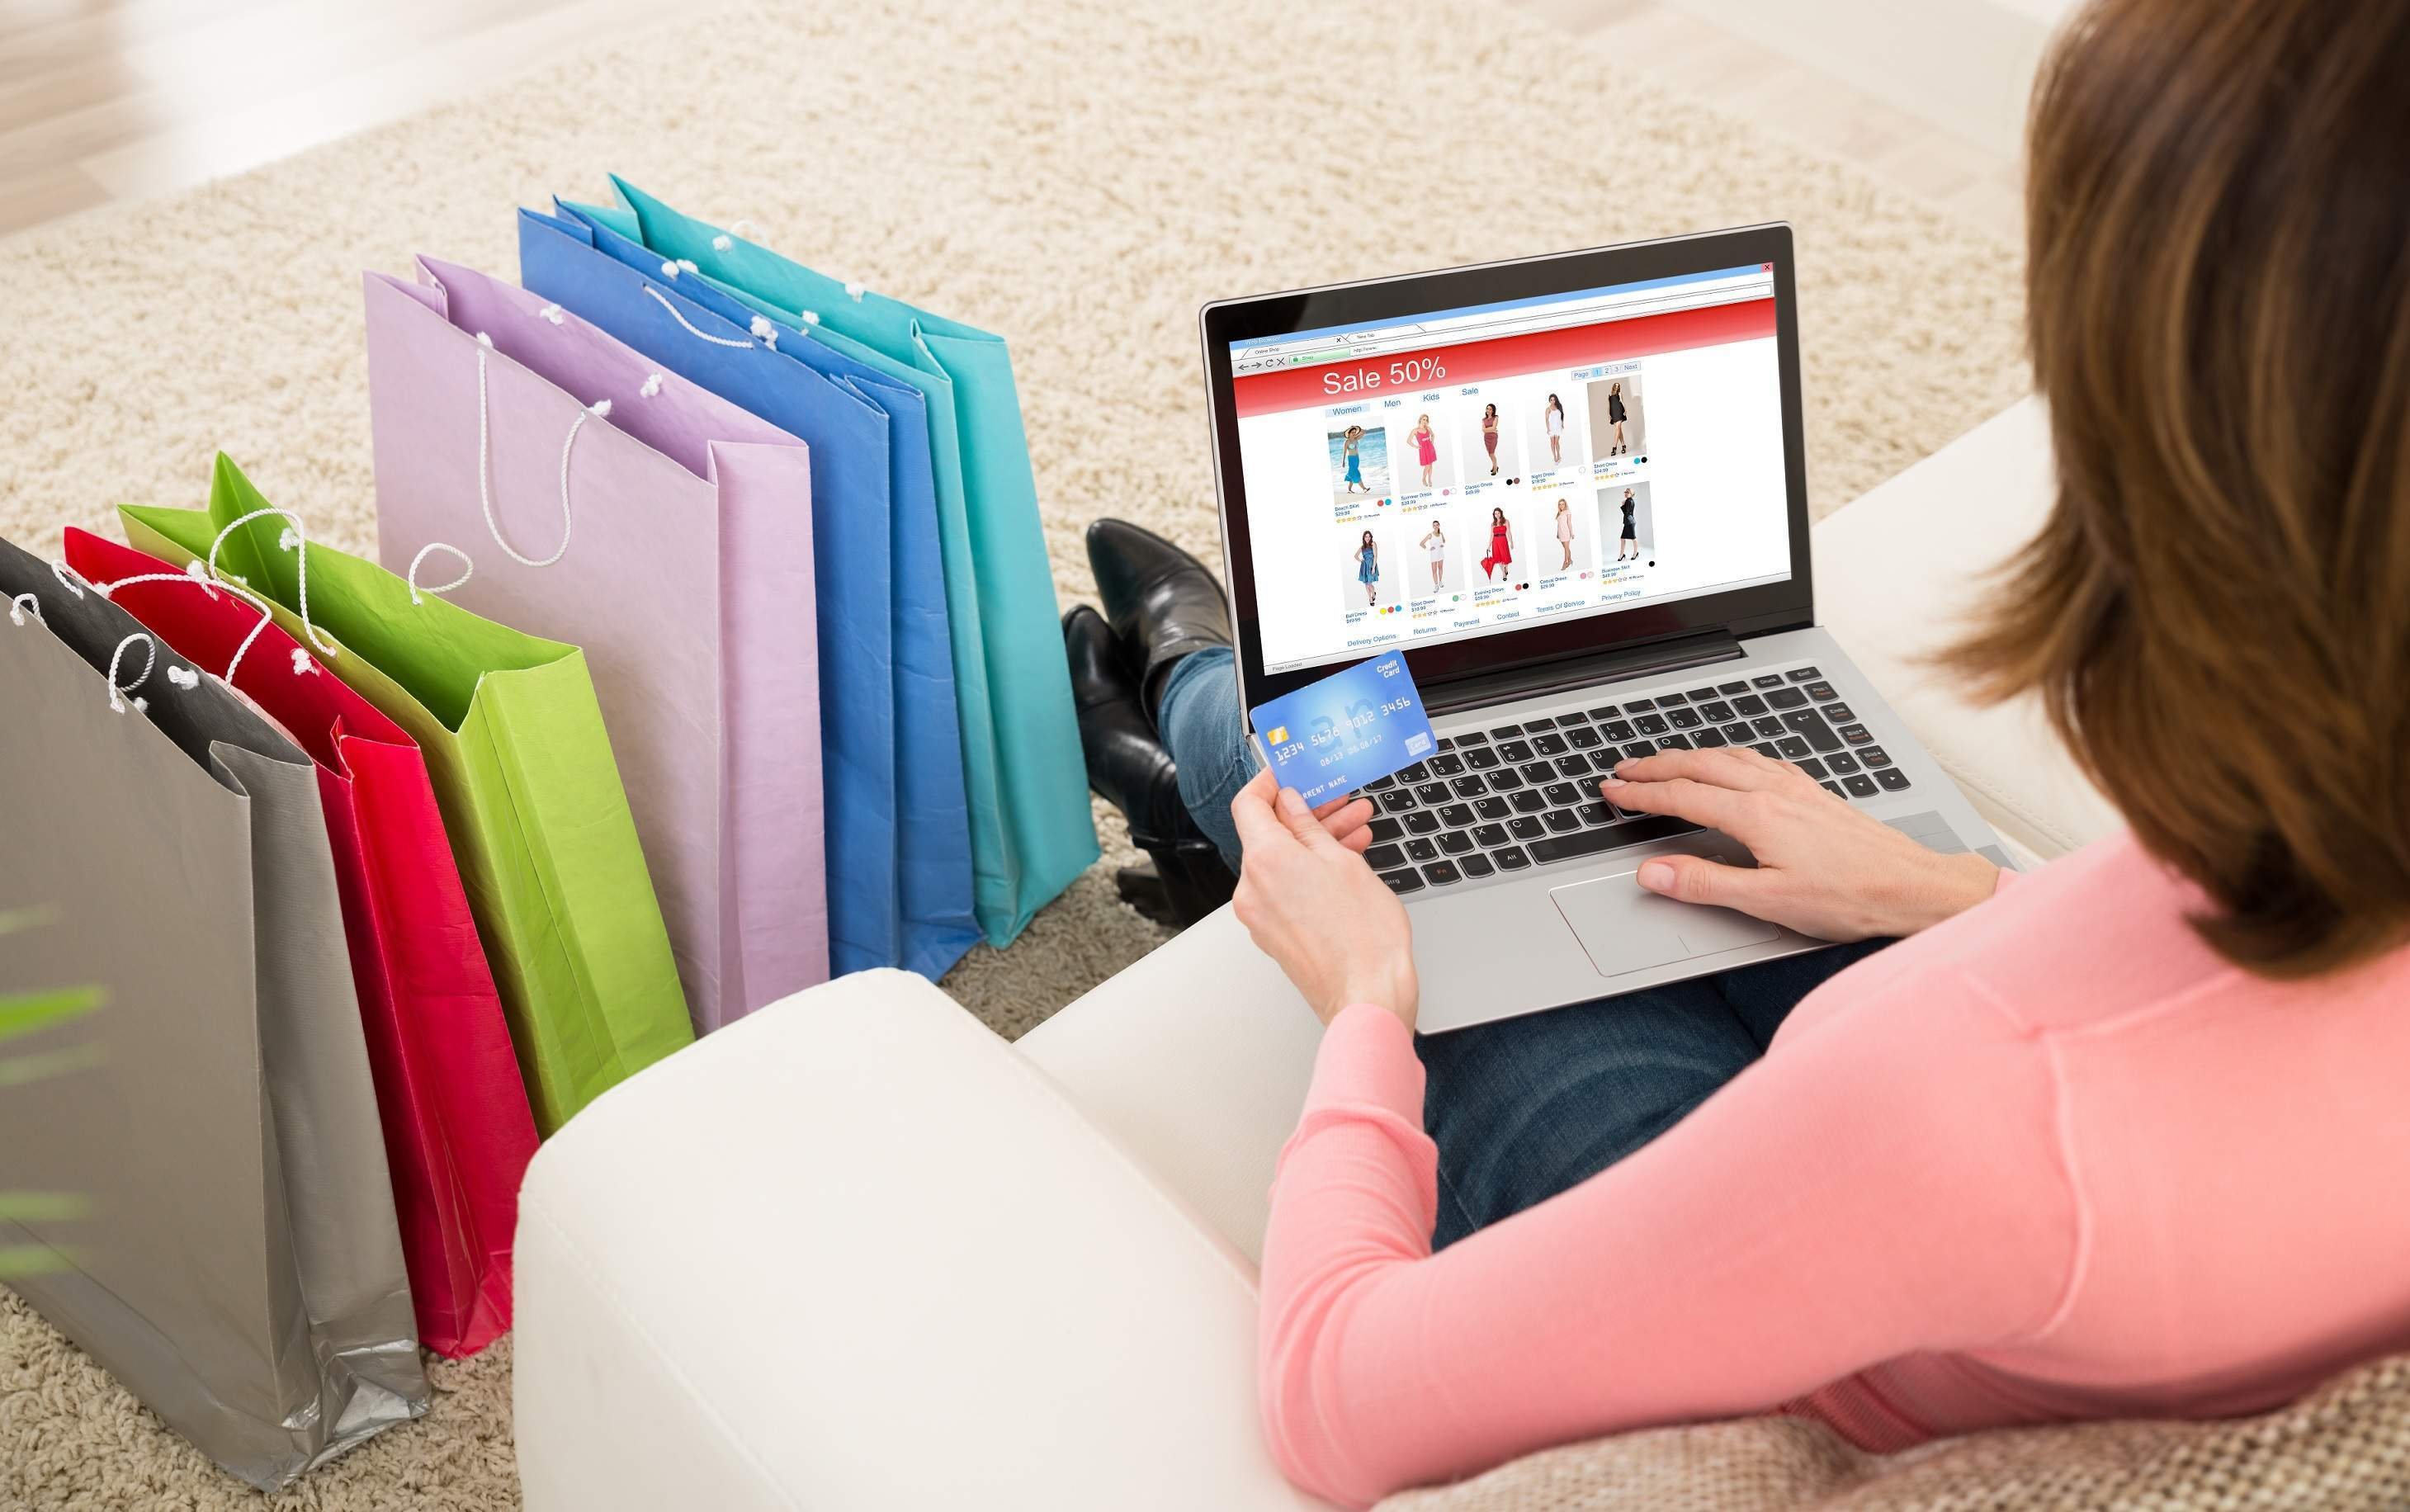 Chinese firm JD invests $397m in UK luxury online retailer Farfetch